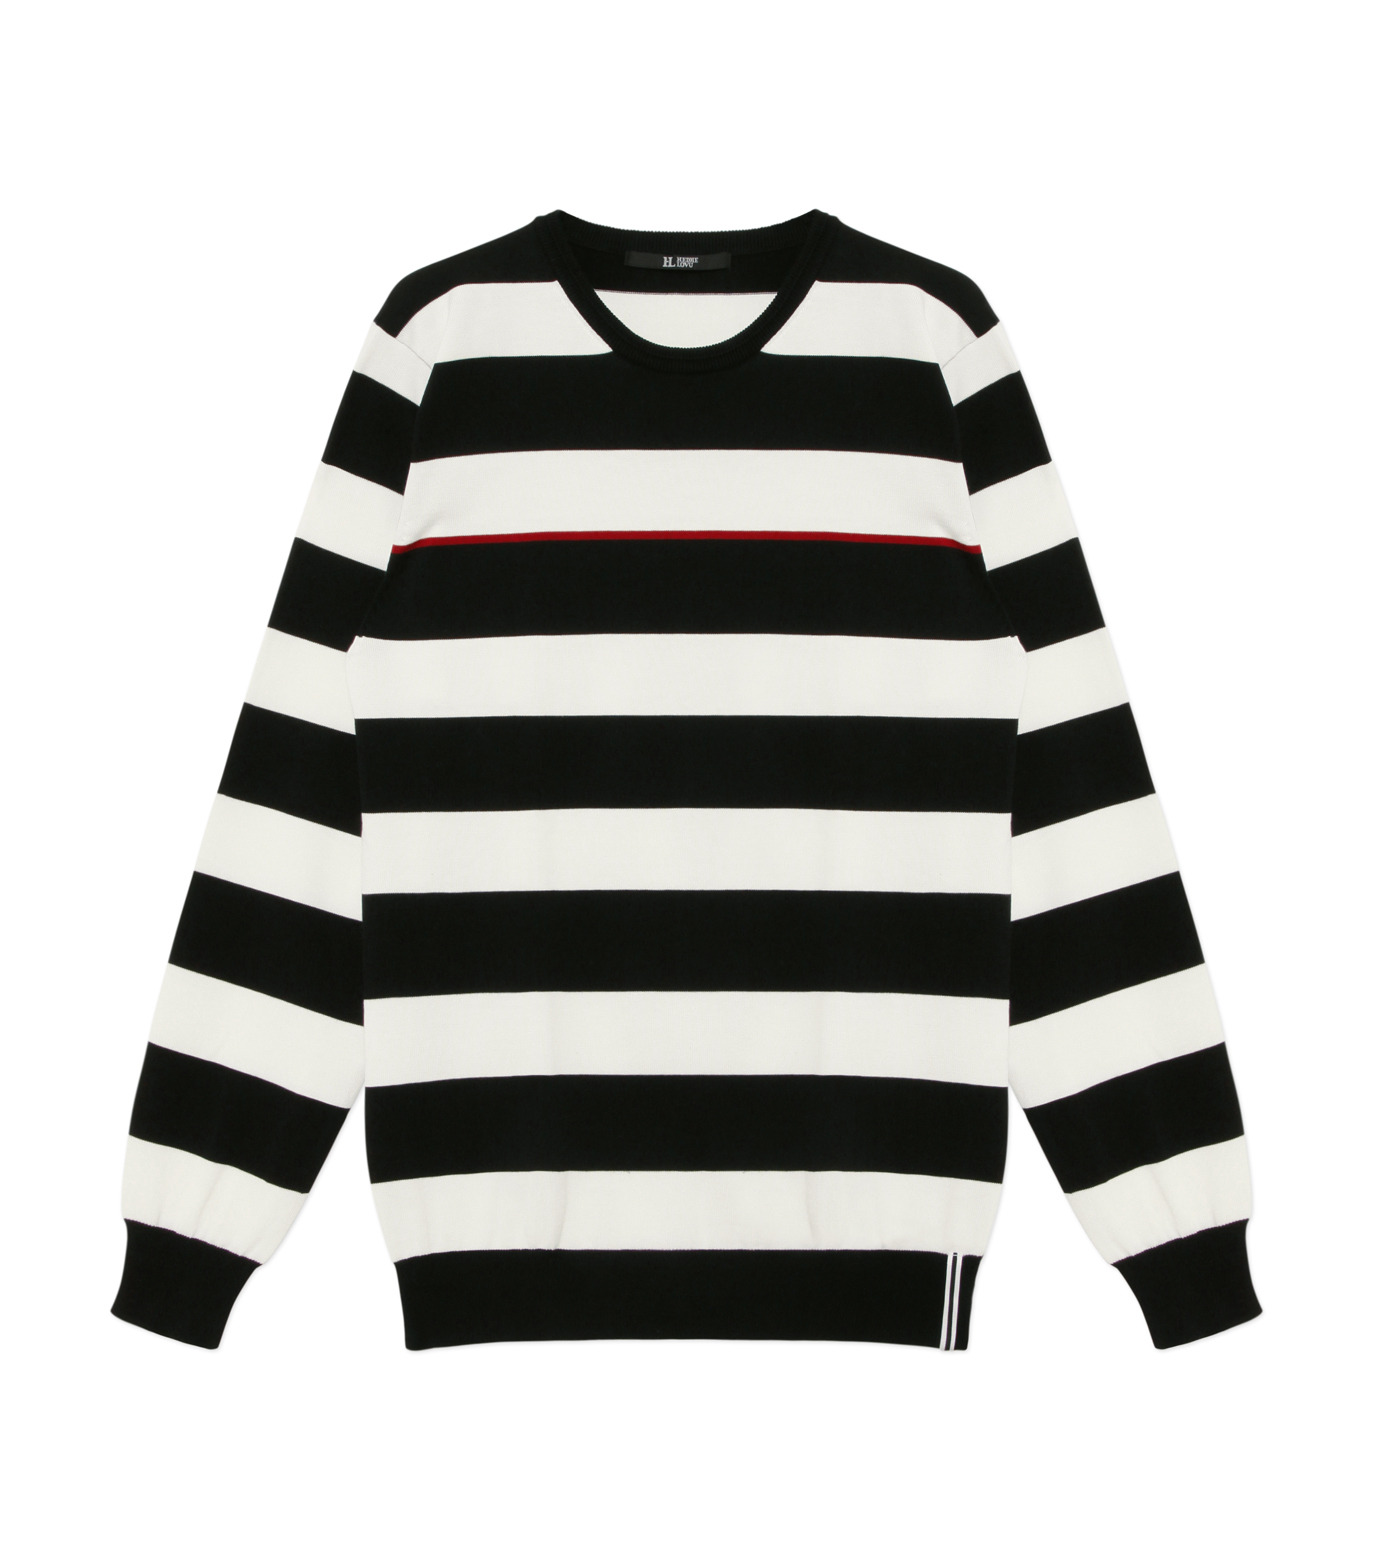 HL HEDDIE LOVU(エイチエル・エディールーヴ)のWIDE PITCH BORDER KNIT-BLACK(SWEATERS & KNITWEARS/SWEATERS & KNITWEARS)-18S91001-13 拡大詳細画像1